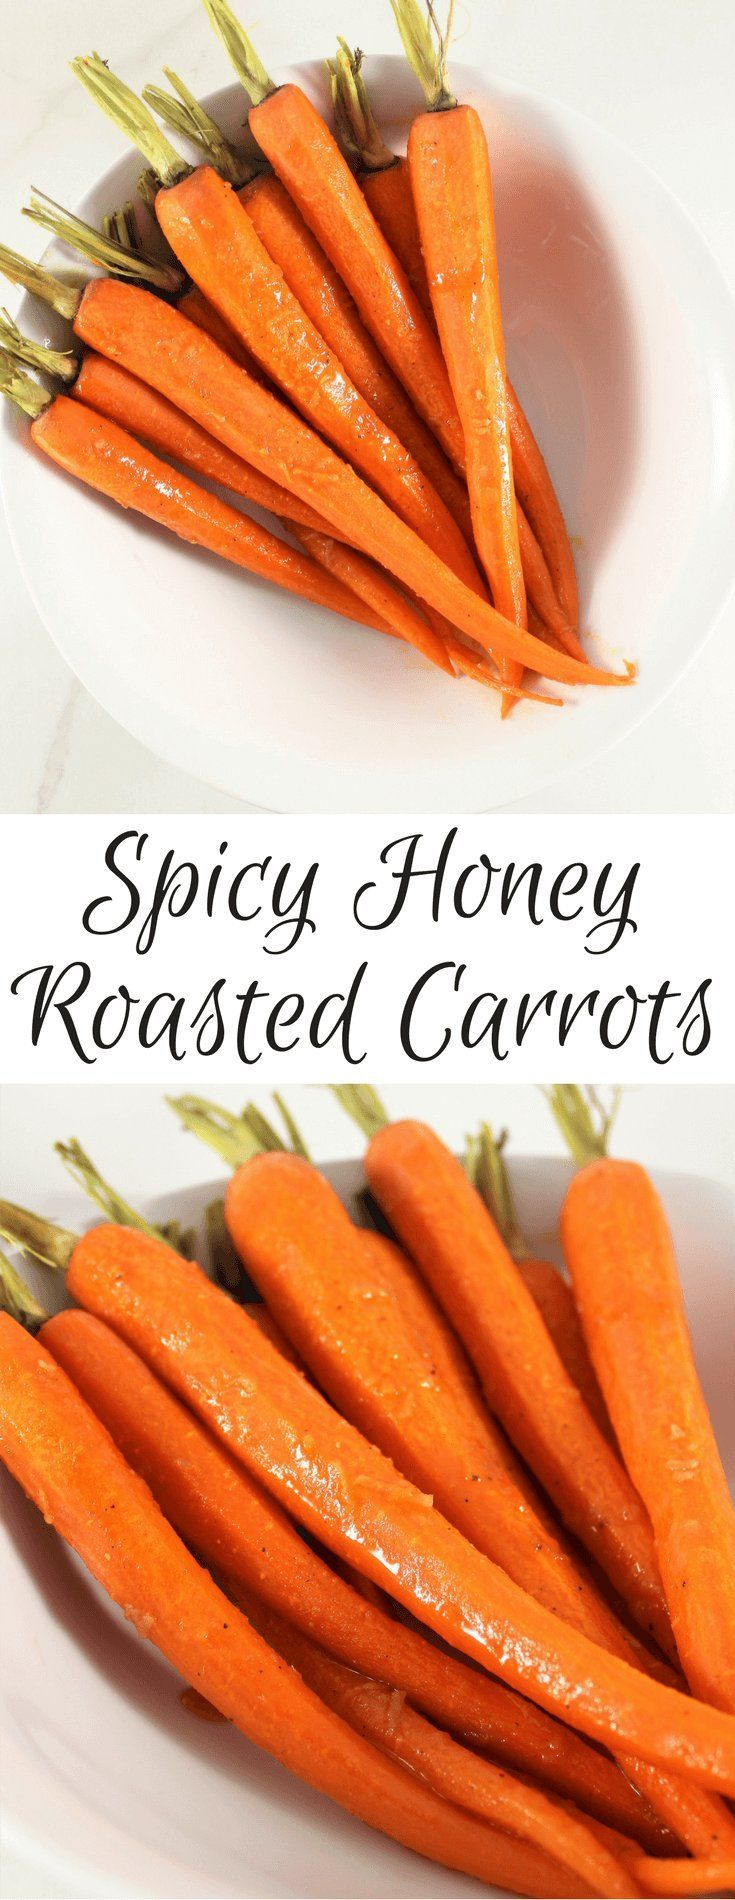 spicy, carrots, sides